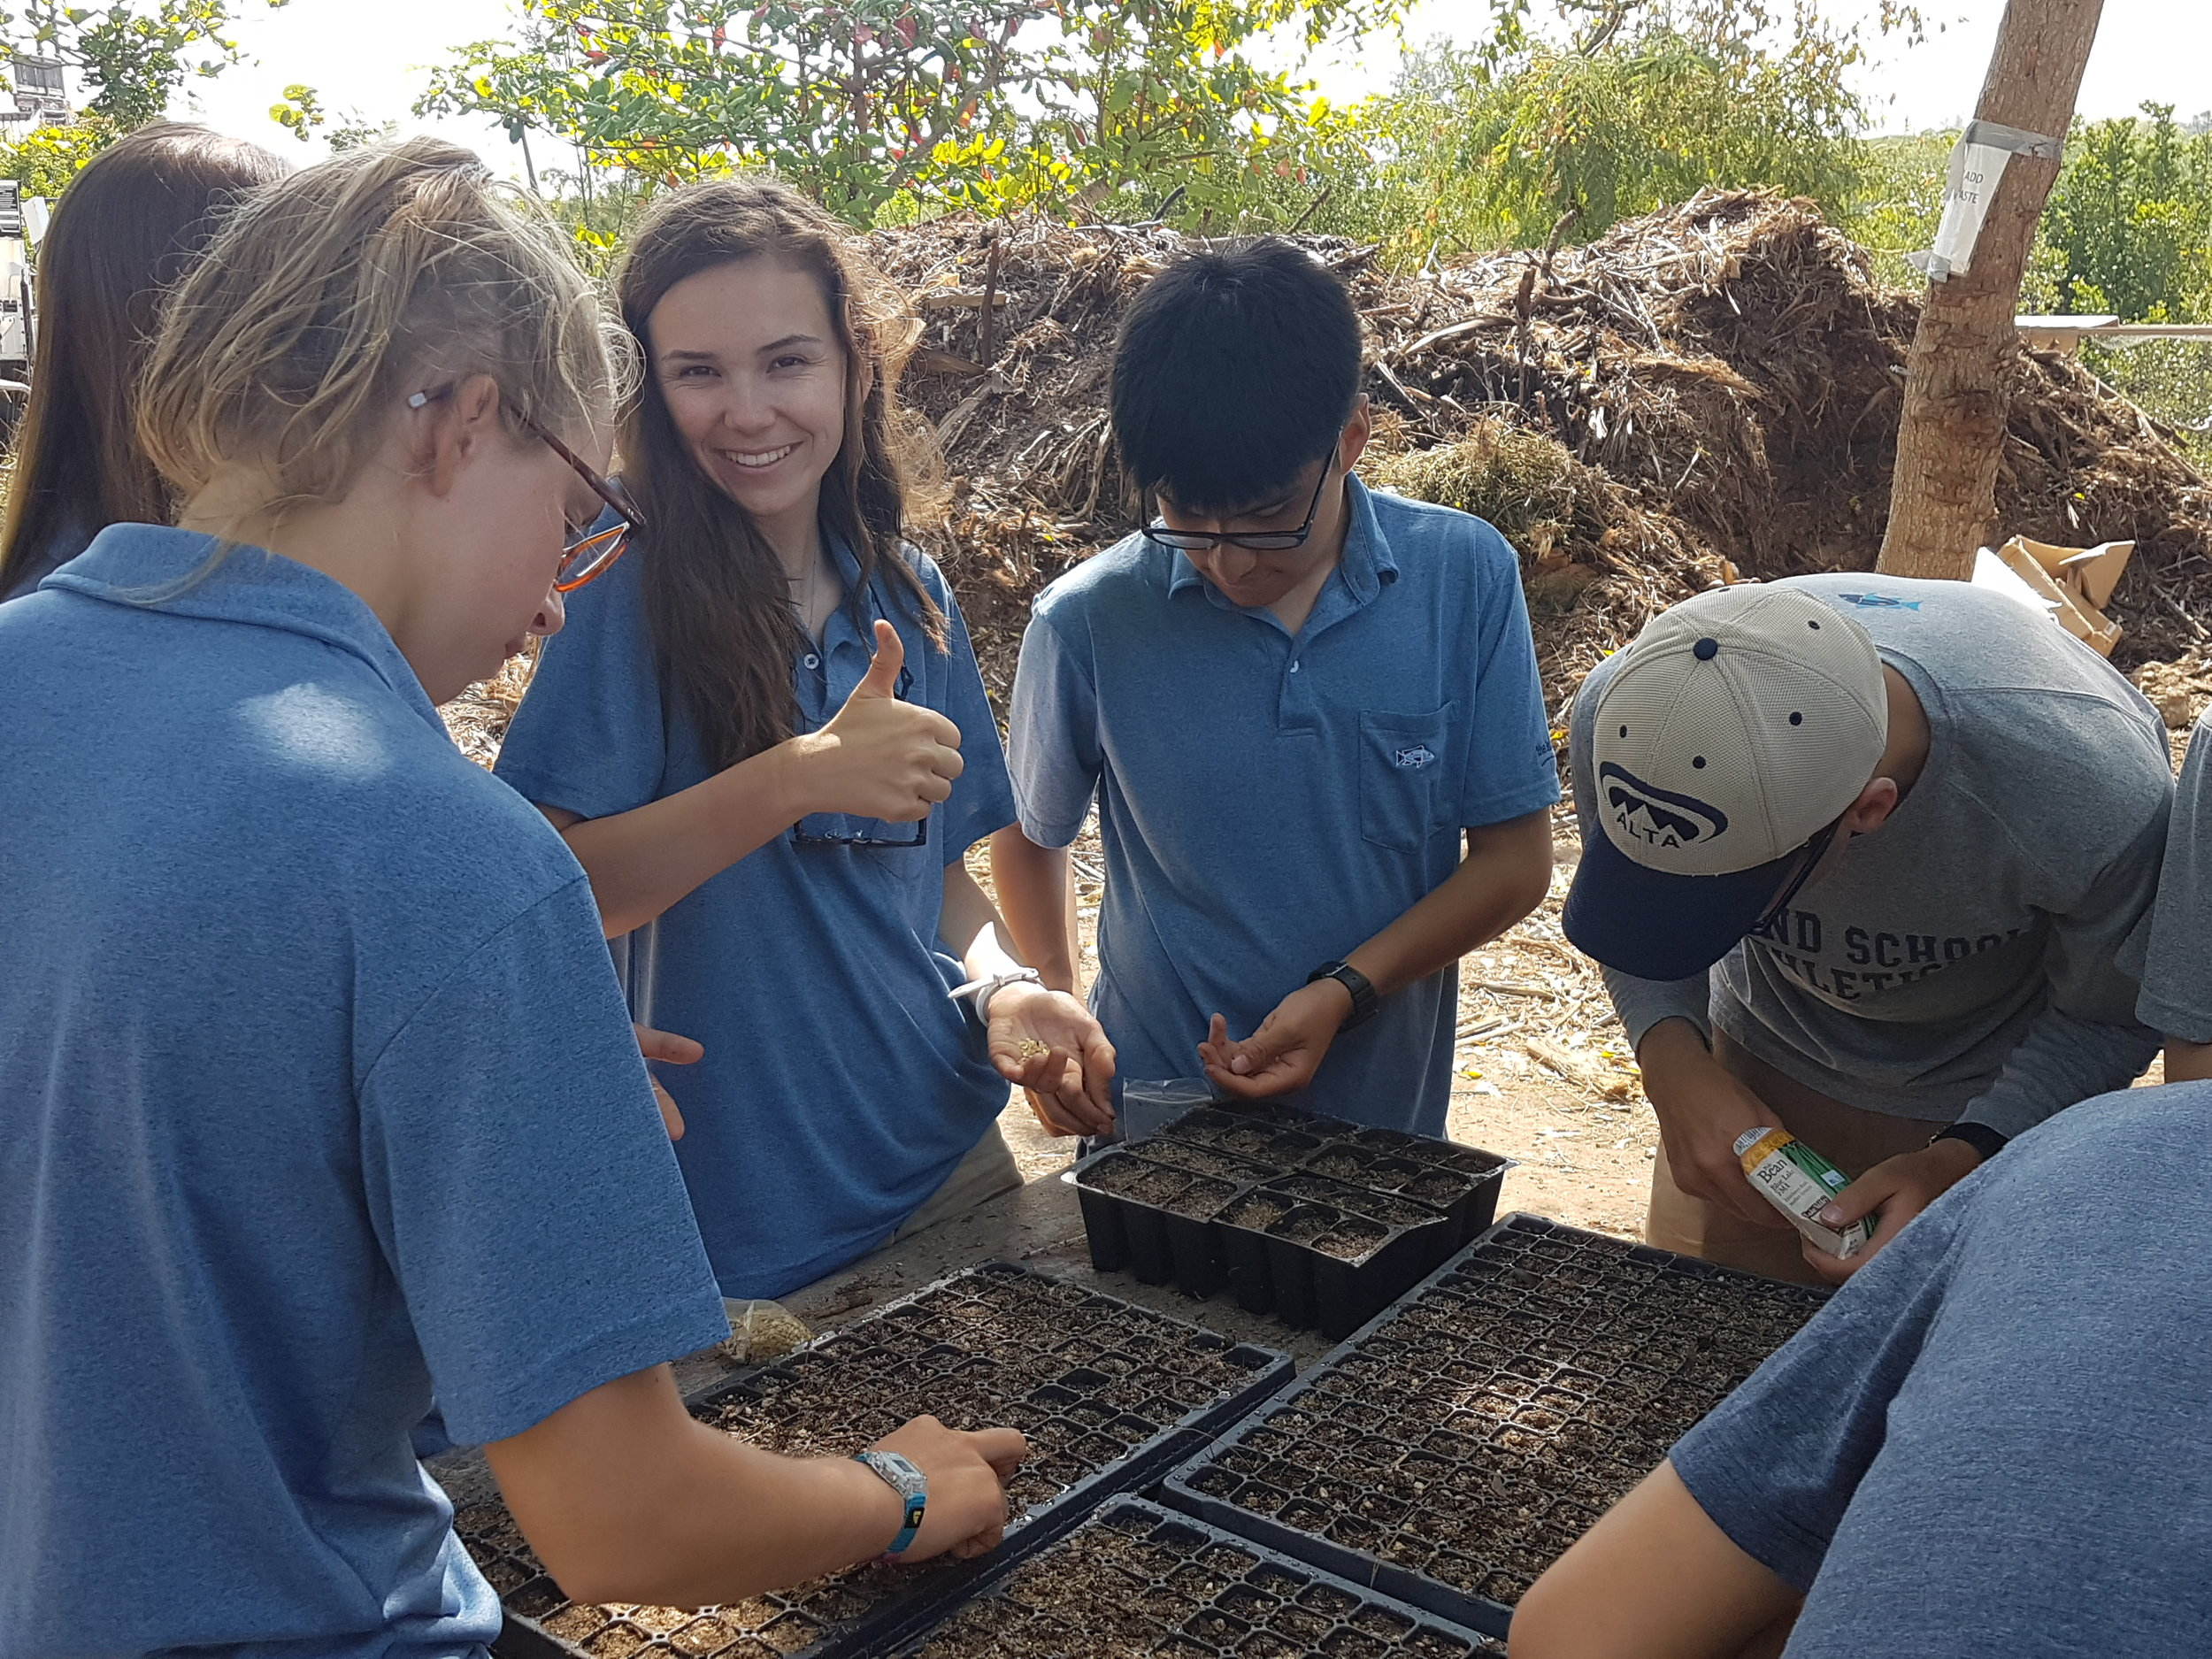 The Research team plants seeds to then be transplanted into the new grow beds in the farm.